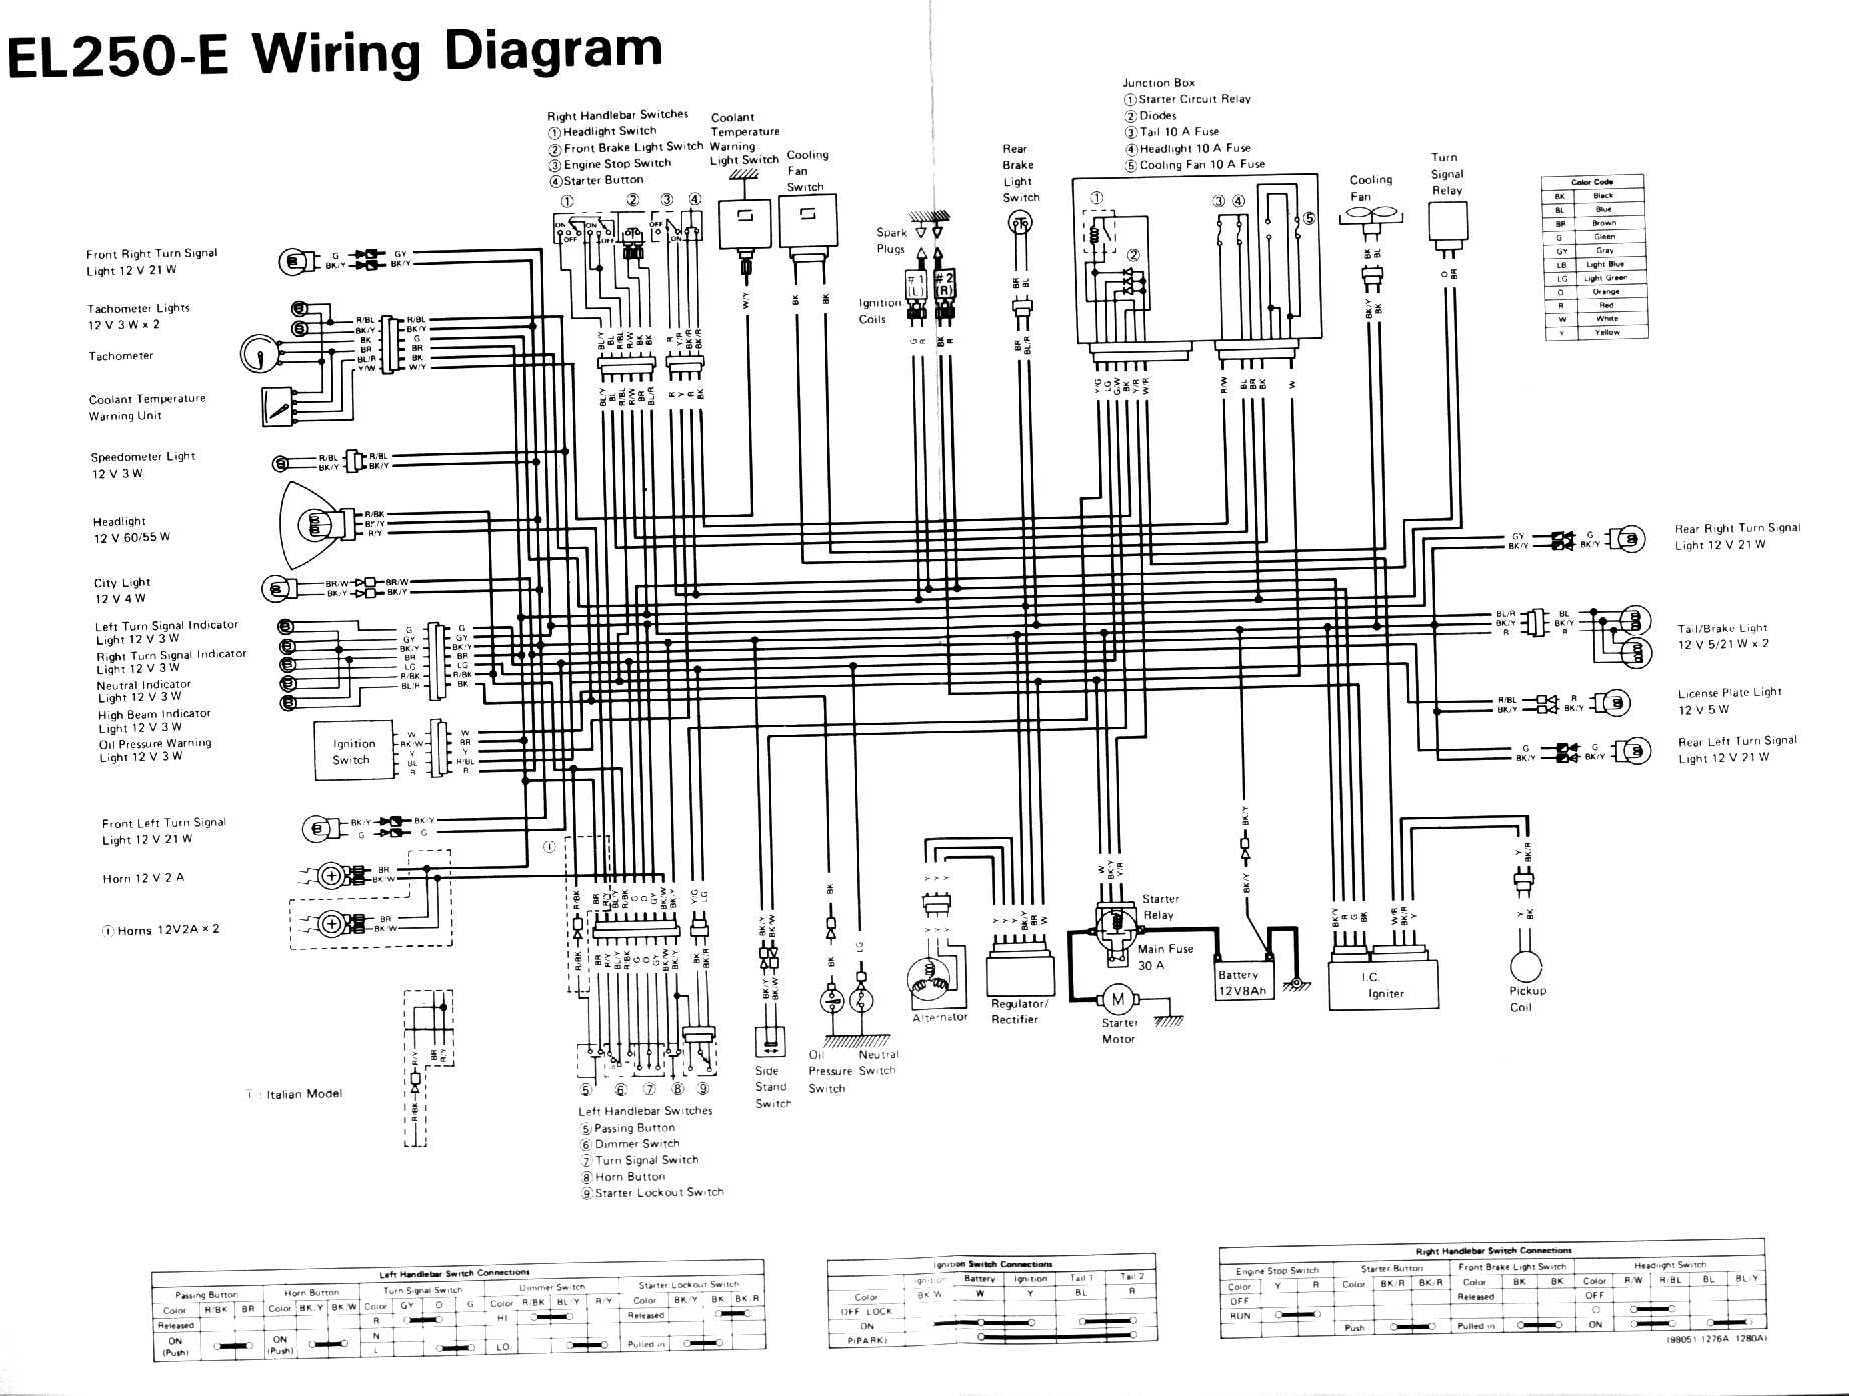 Kawasaki Atv 750 Engine Diagram Get Free Image About on kawasaki zrx 1200 wiring diagram